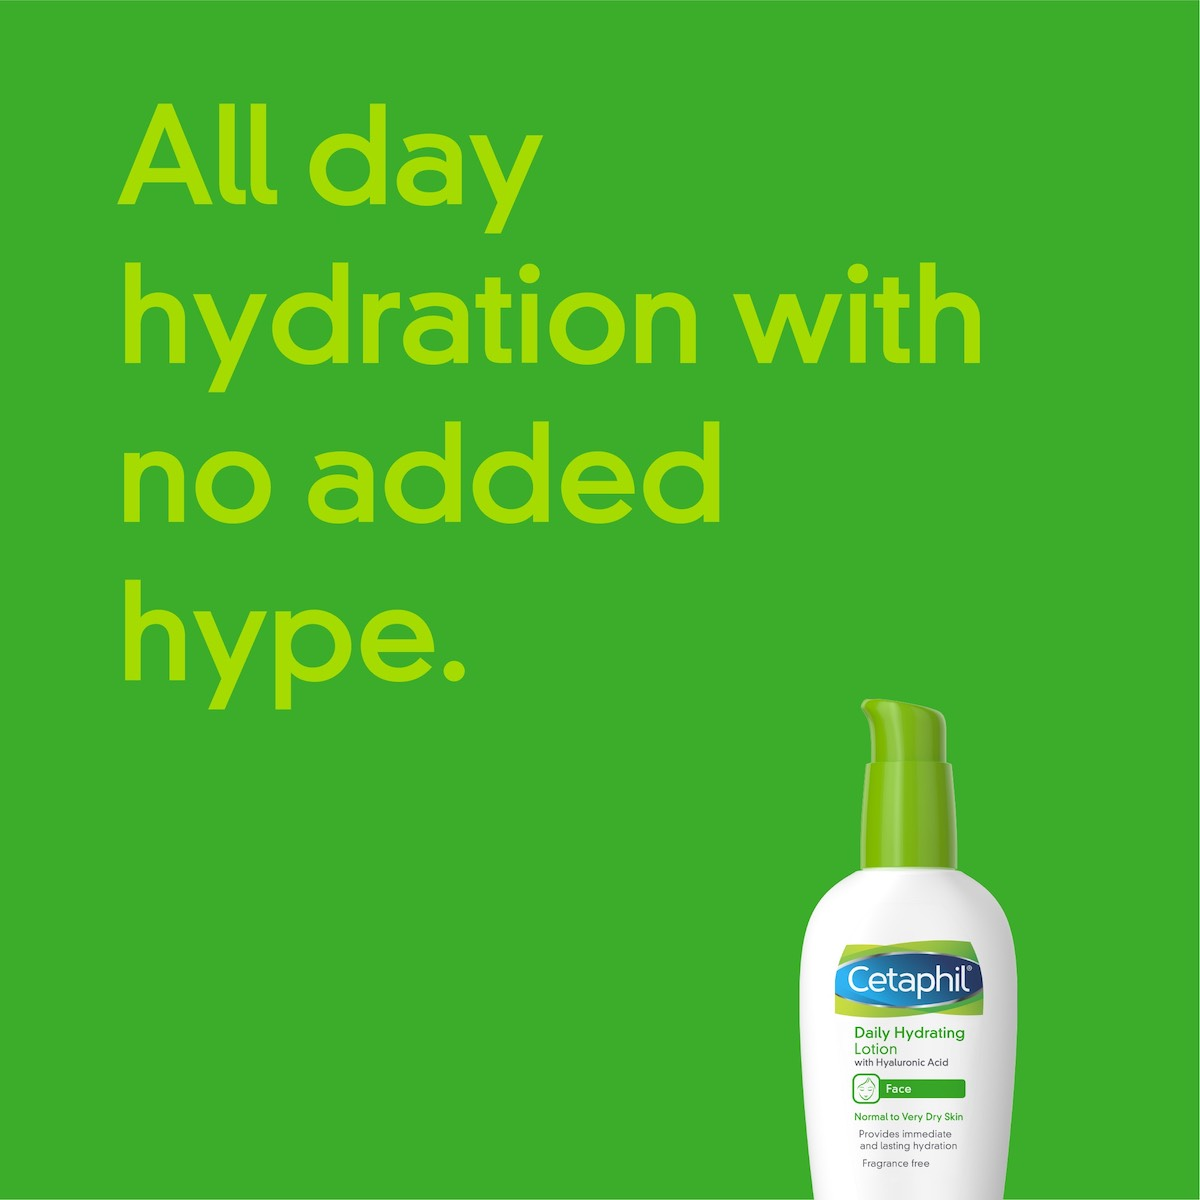 Skincare influencer tells all in Cetaphil's new 'Hype-Free Skincare' campaign via Emotive